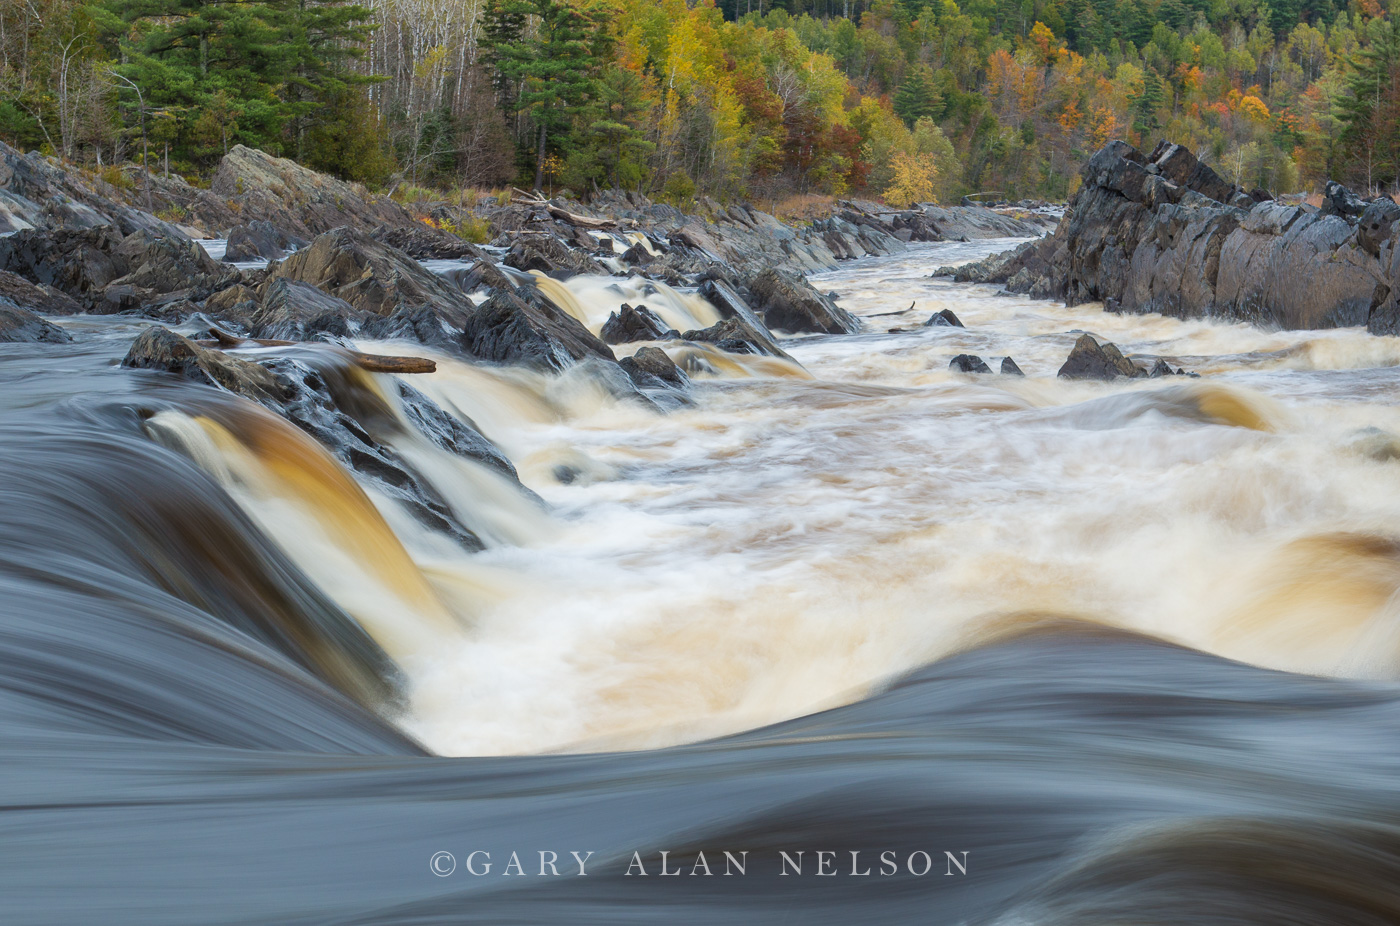 Rapid water on the St. Louis River, J. Cooke State Park, Minnesota